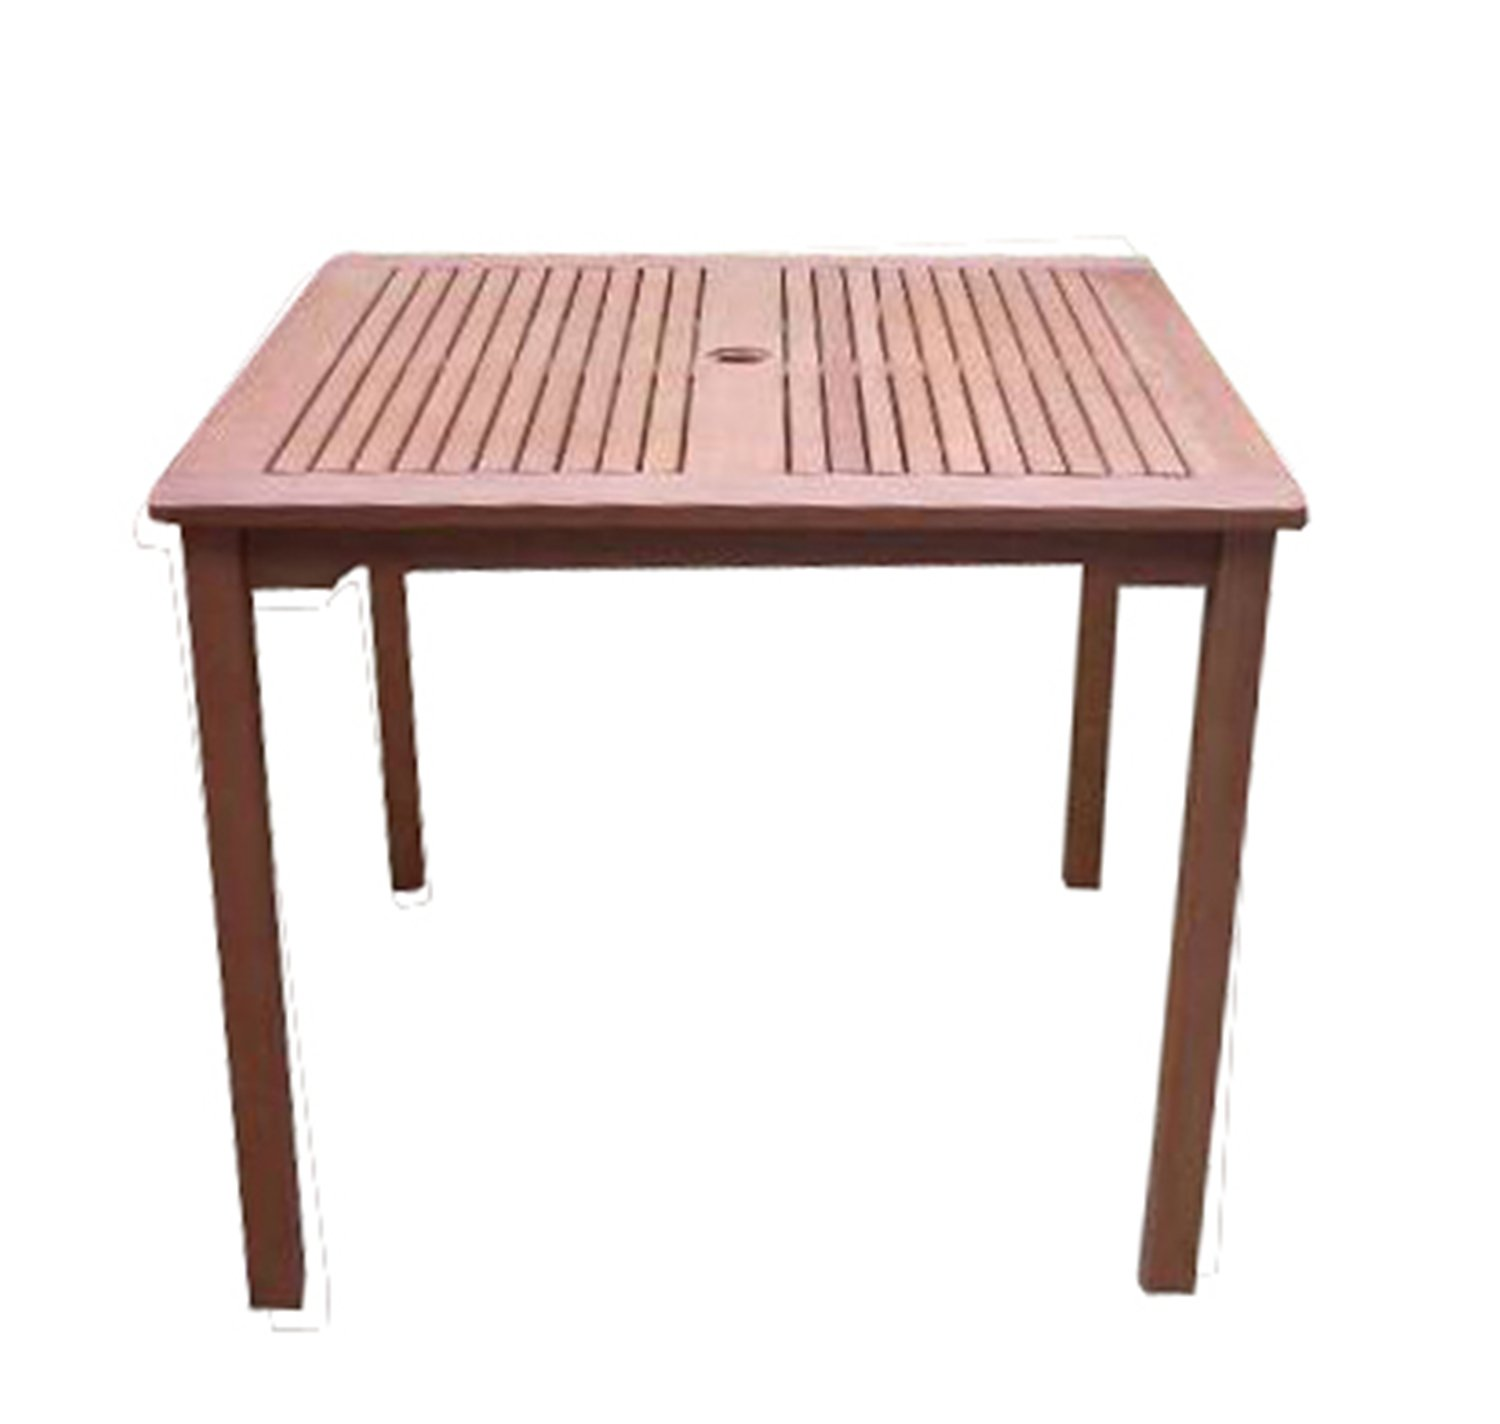 VIFAH V1104 Ibiza Outdoor Wood Stacking Table, Natural Wood Finish, 35-1/2  by 35.4 by 29-1/2-Inch - Amazon.com: Dining Tables: Patio, Lawn & Garden